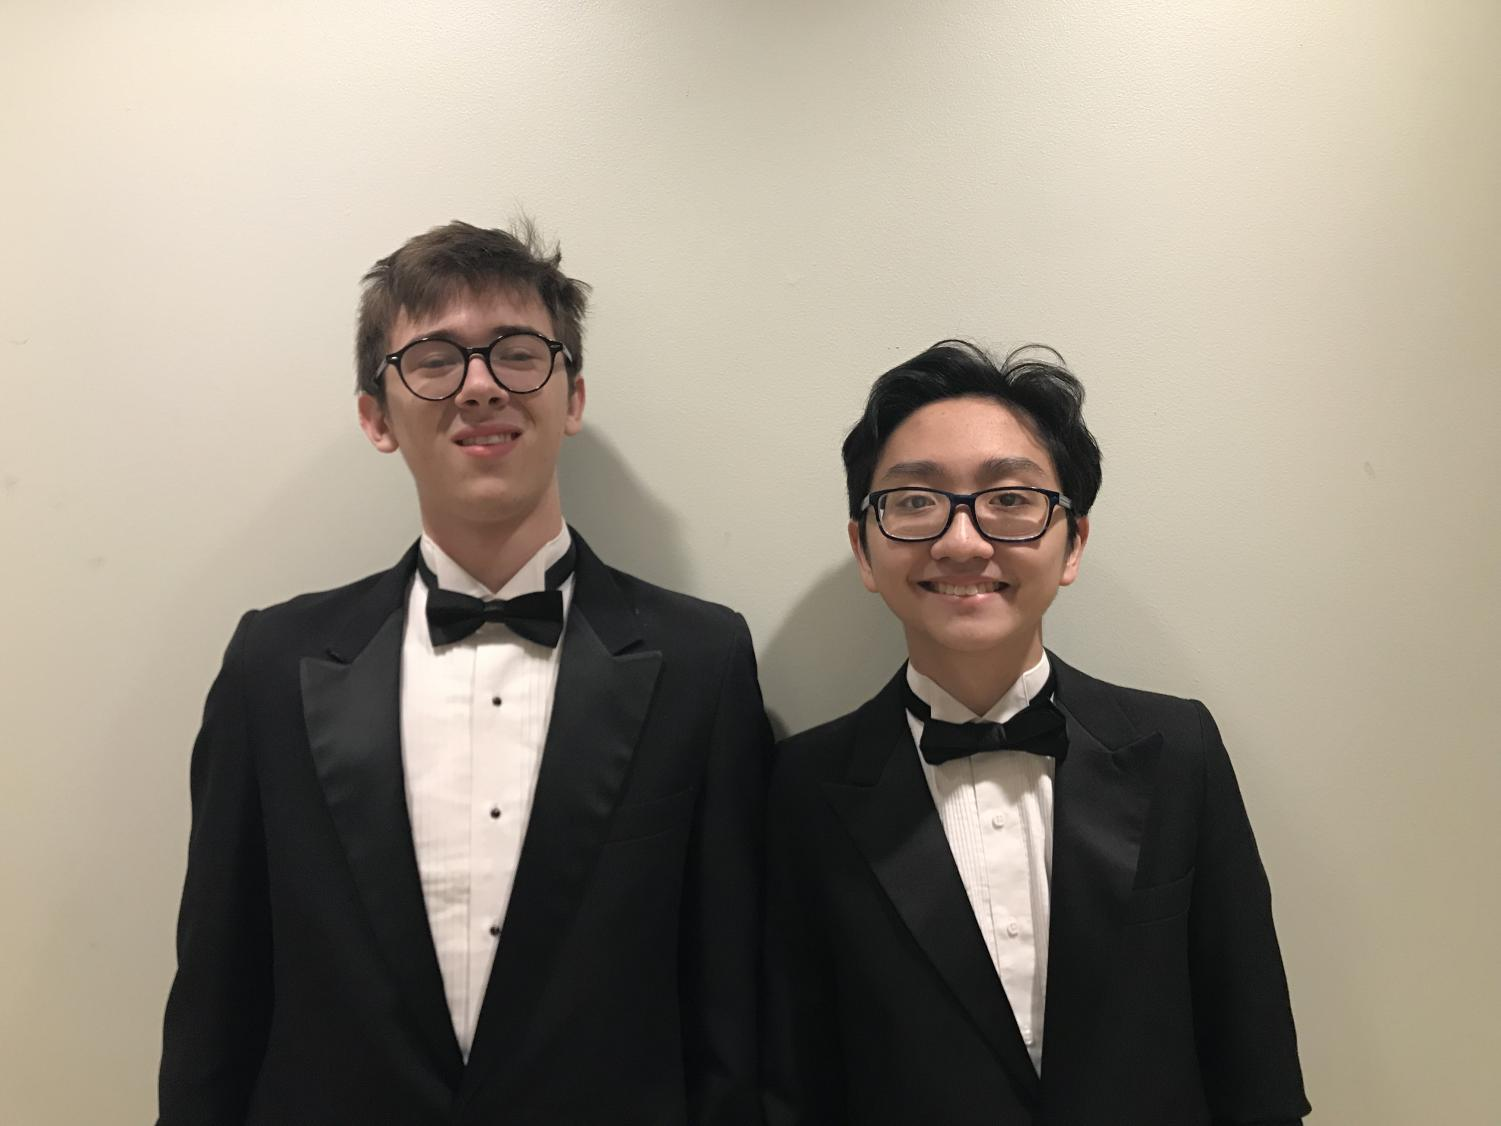 Juniors Jackson Burnette (Left) and Victor Nguyen (Right)